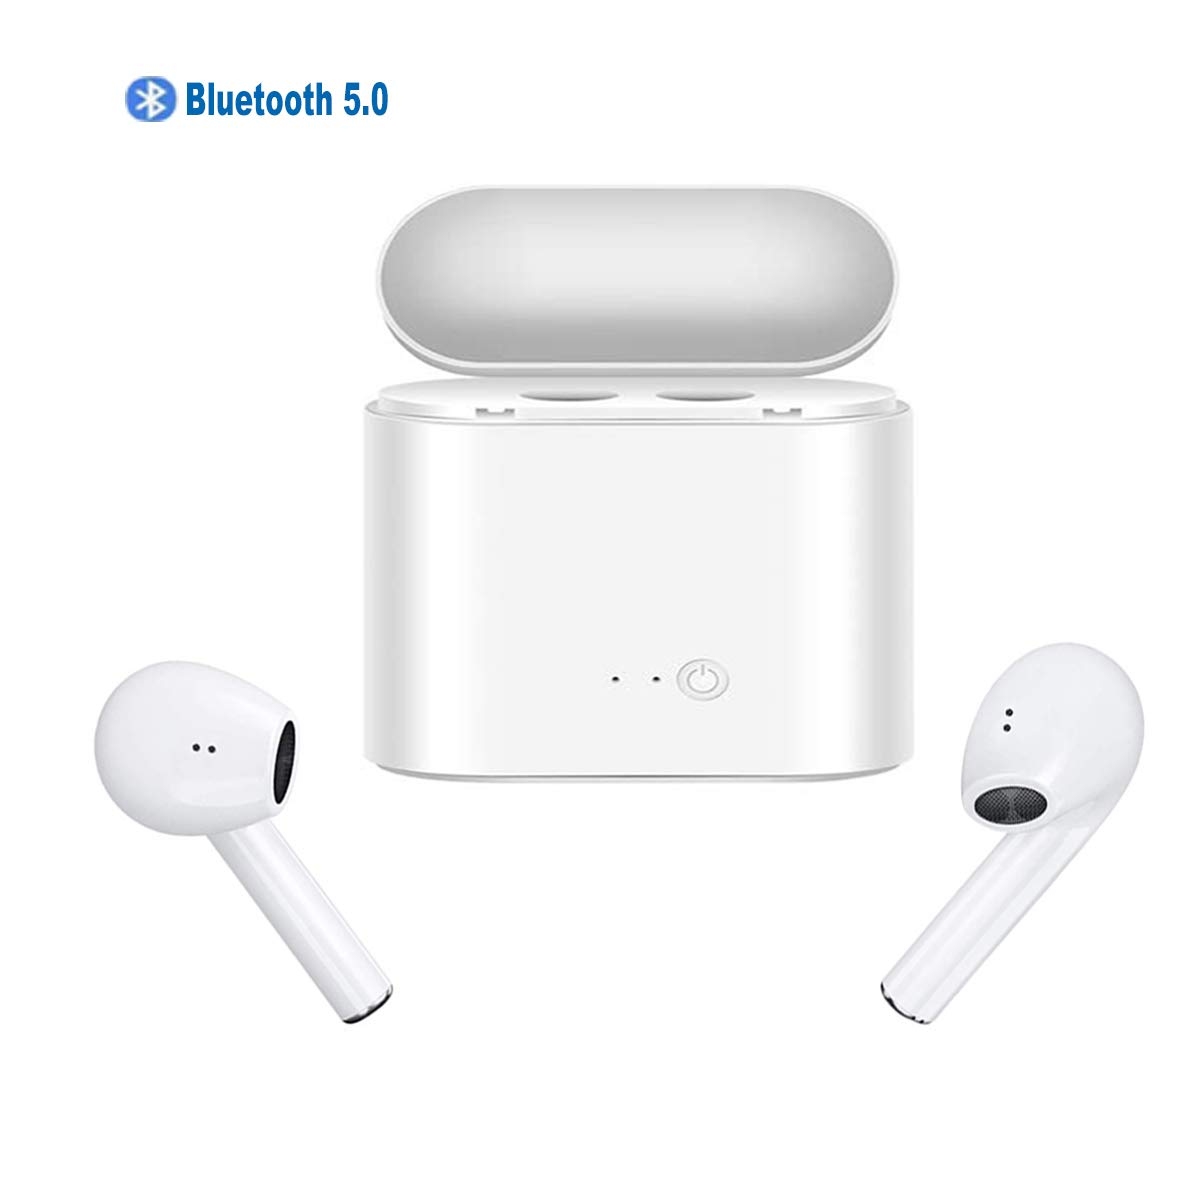 Wireless Headphones, Bluetooth5.0 Waterproof Bluetooth Headphones Sports Earphones for Running